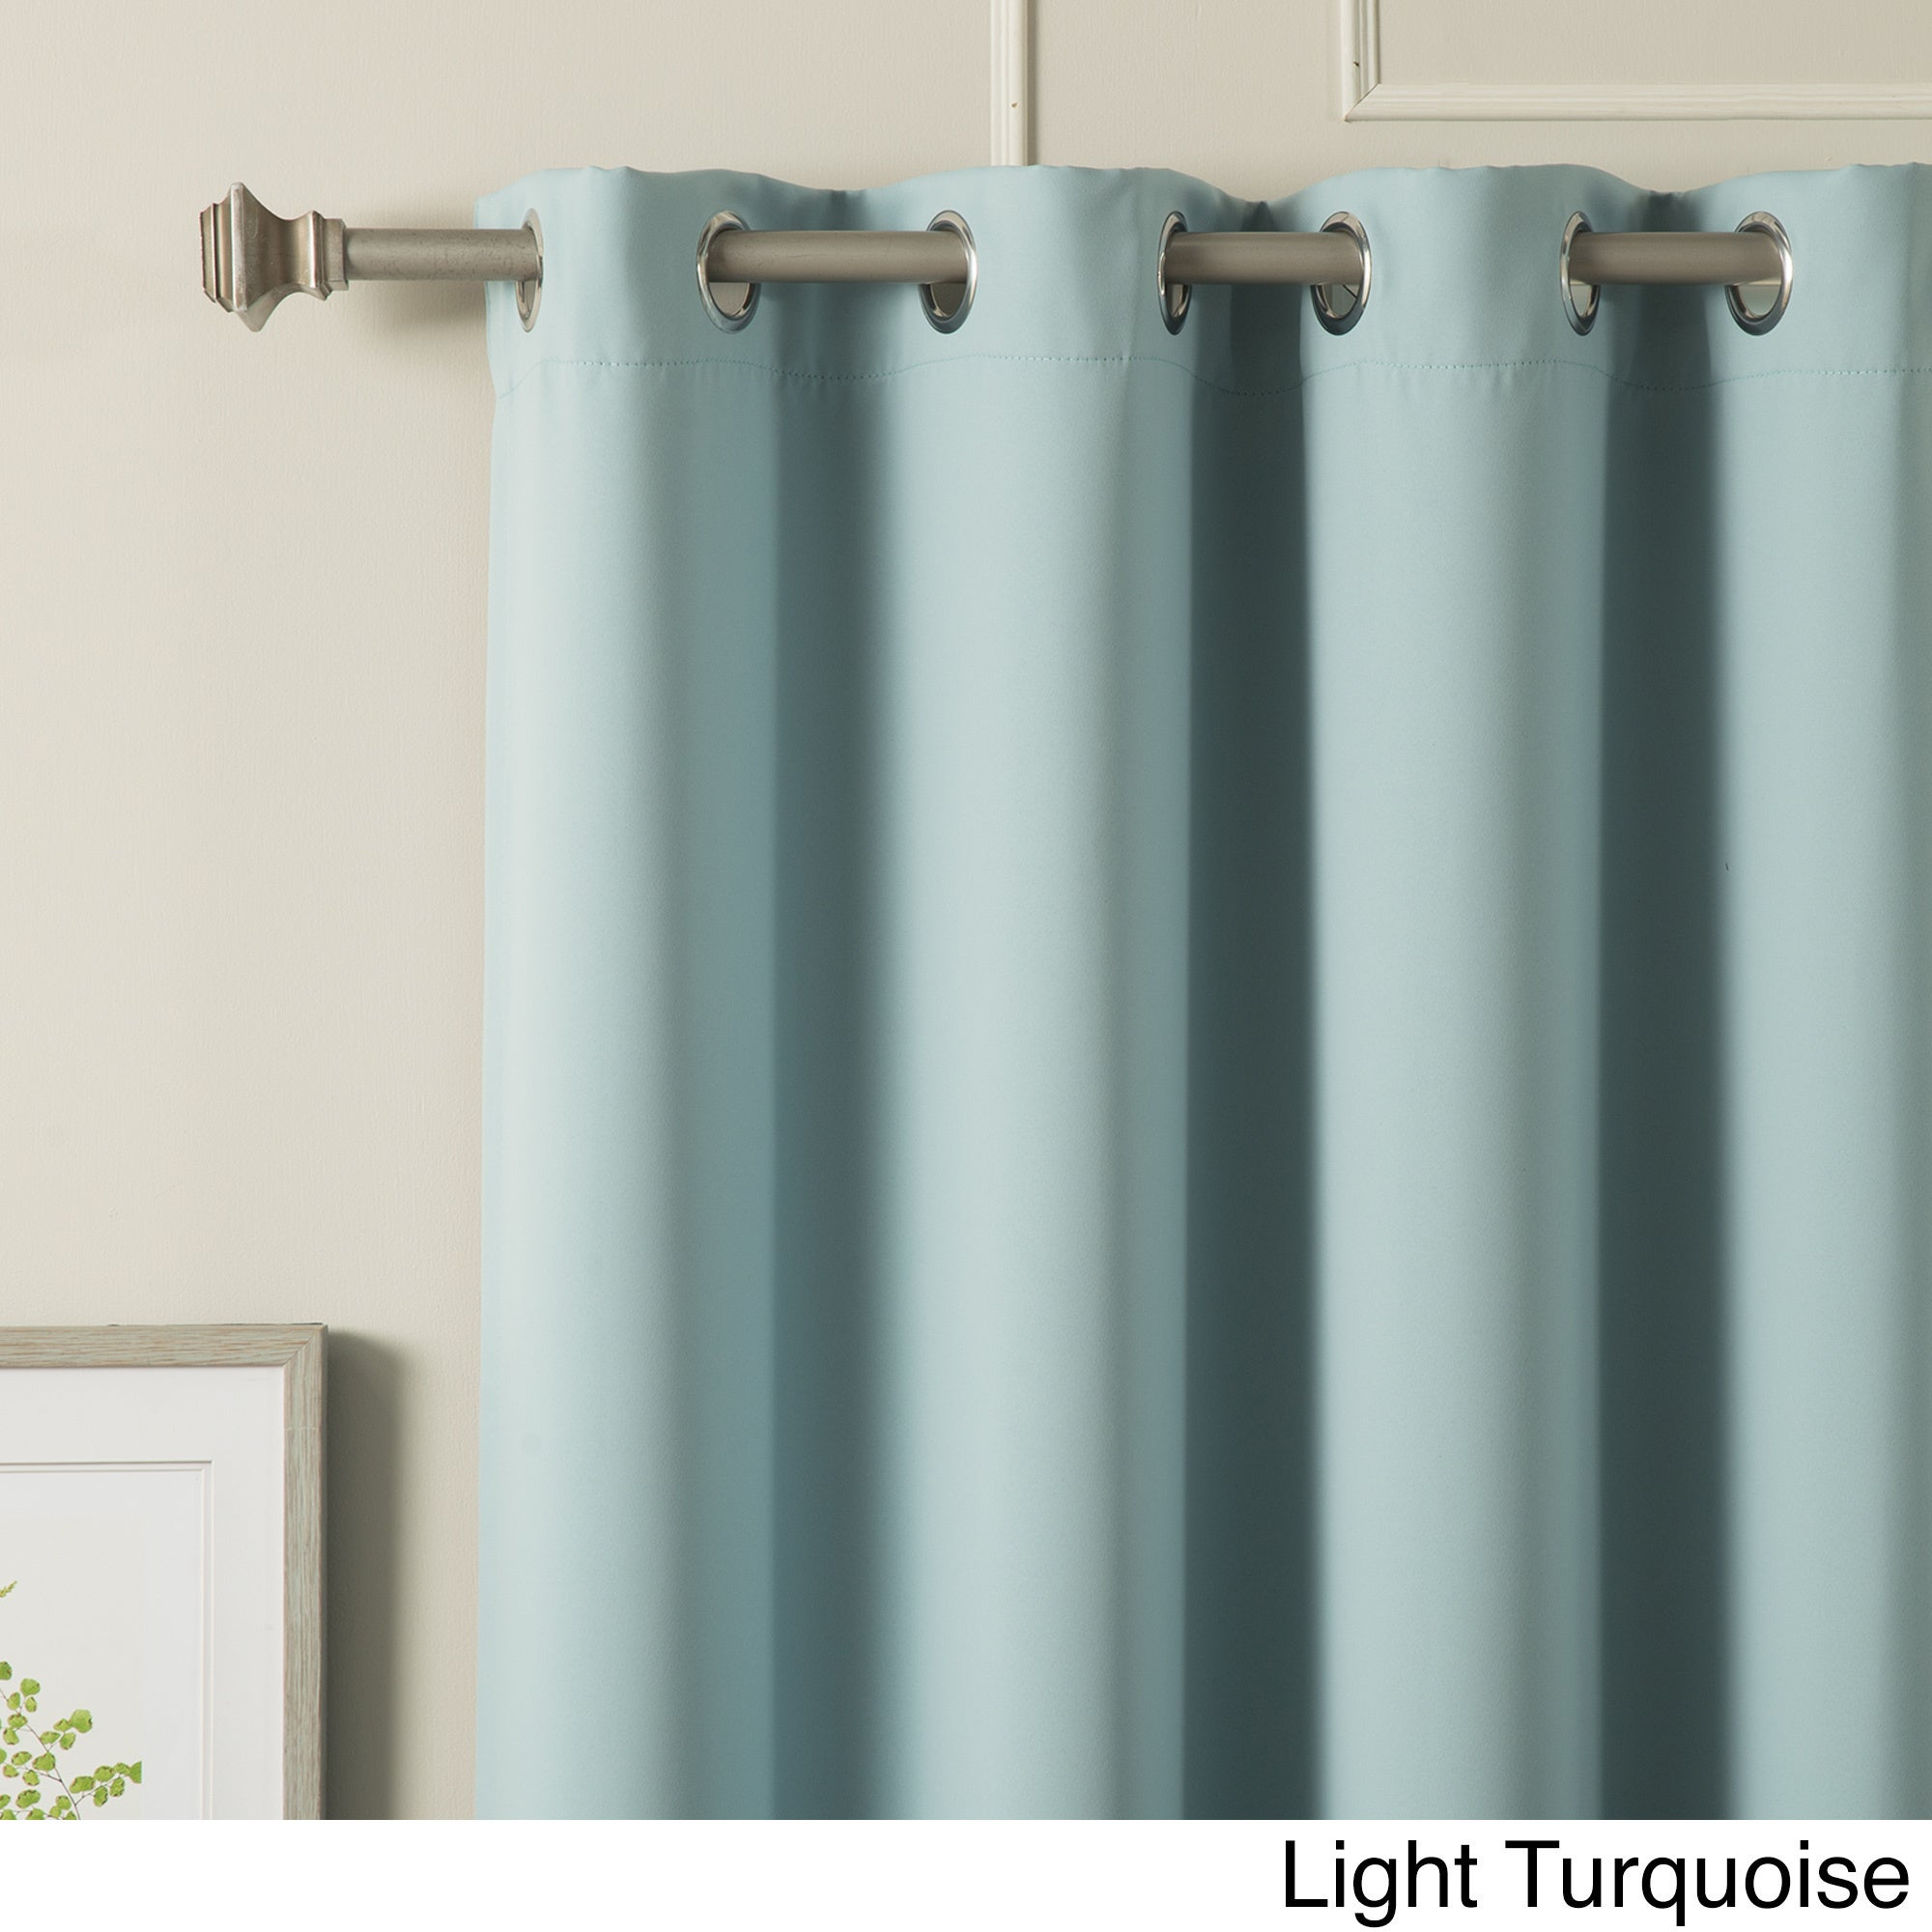 Aurora Home Silvertone Grommet Top Thermal Insulated Blackout Curtain Panel Pair Regarding Silvertone Grommet Thermal Insulated Blackout Curtain Panel Pairs (View 12 of 30)